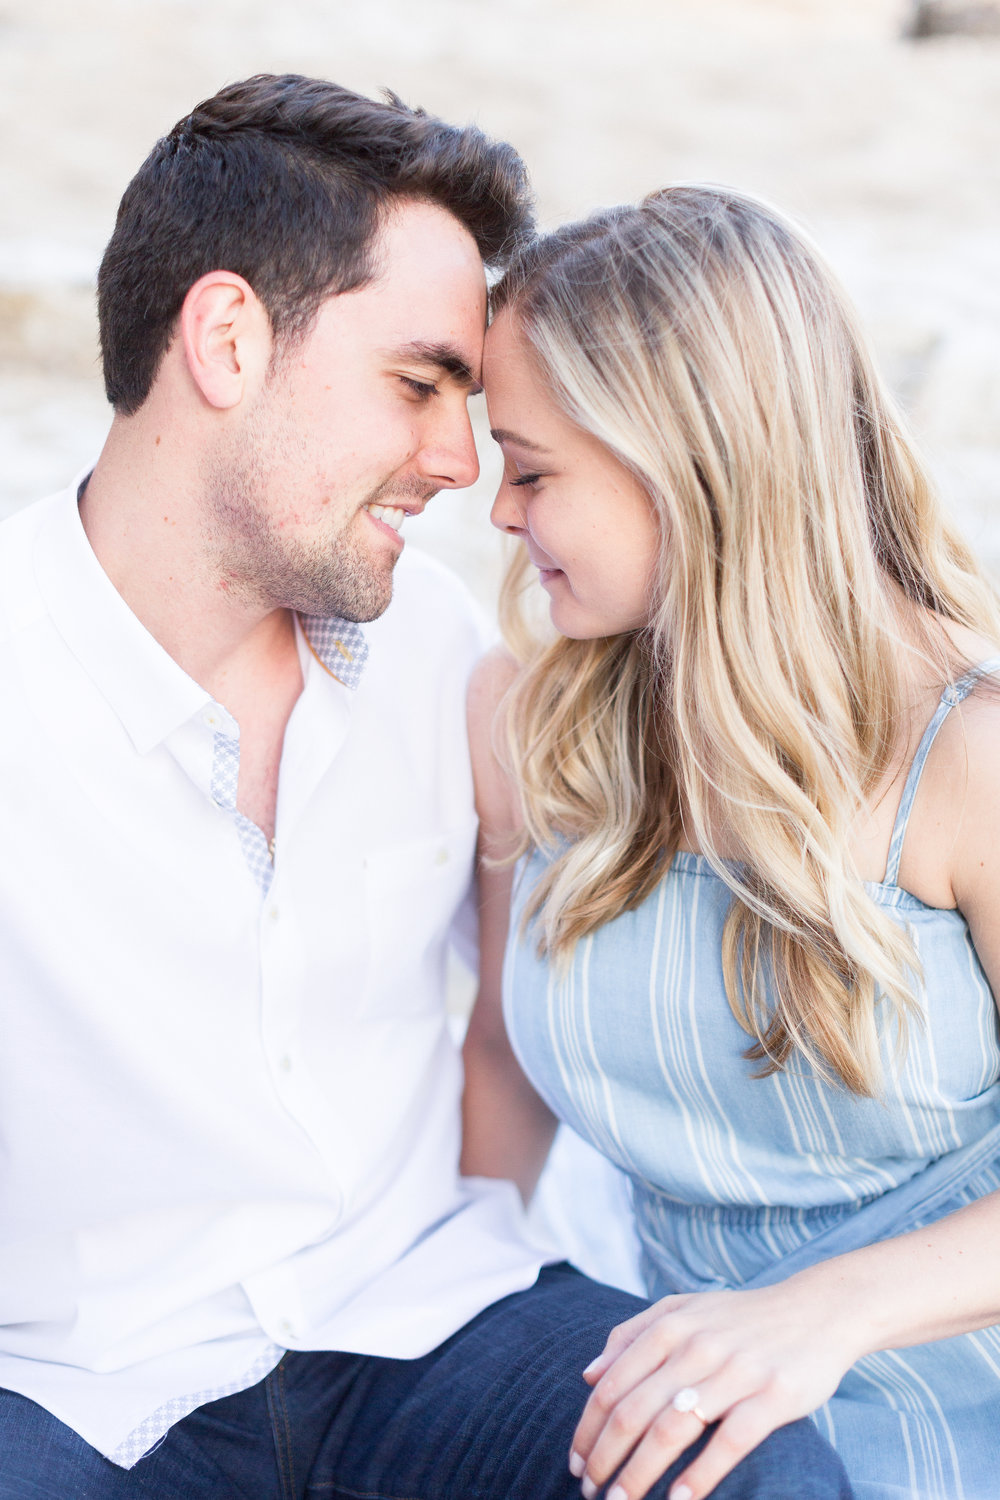 panther-beach-santa-cruz-engagement-session-photographer-56.jpg